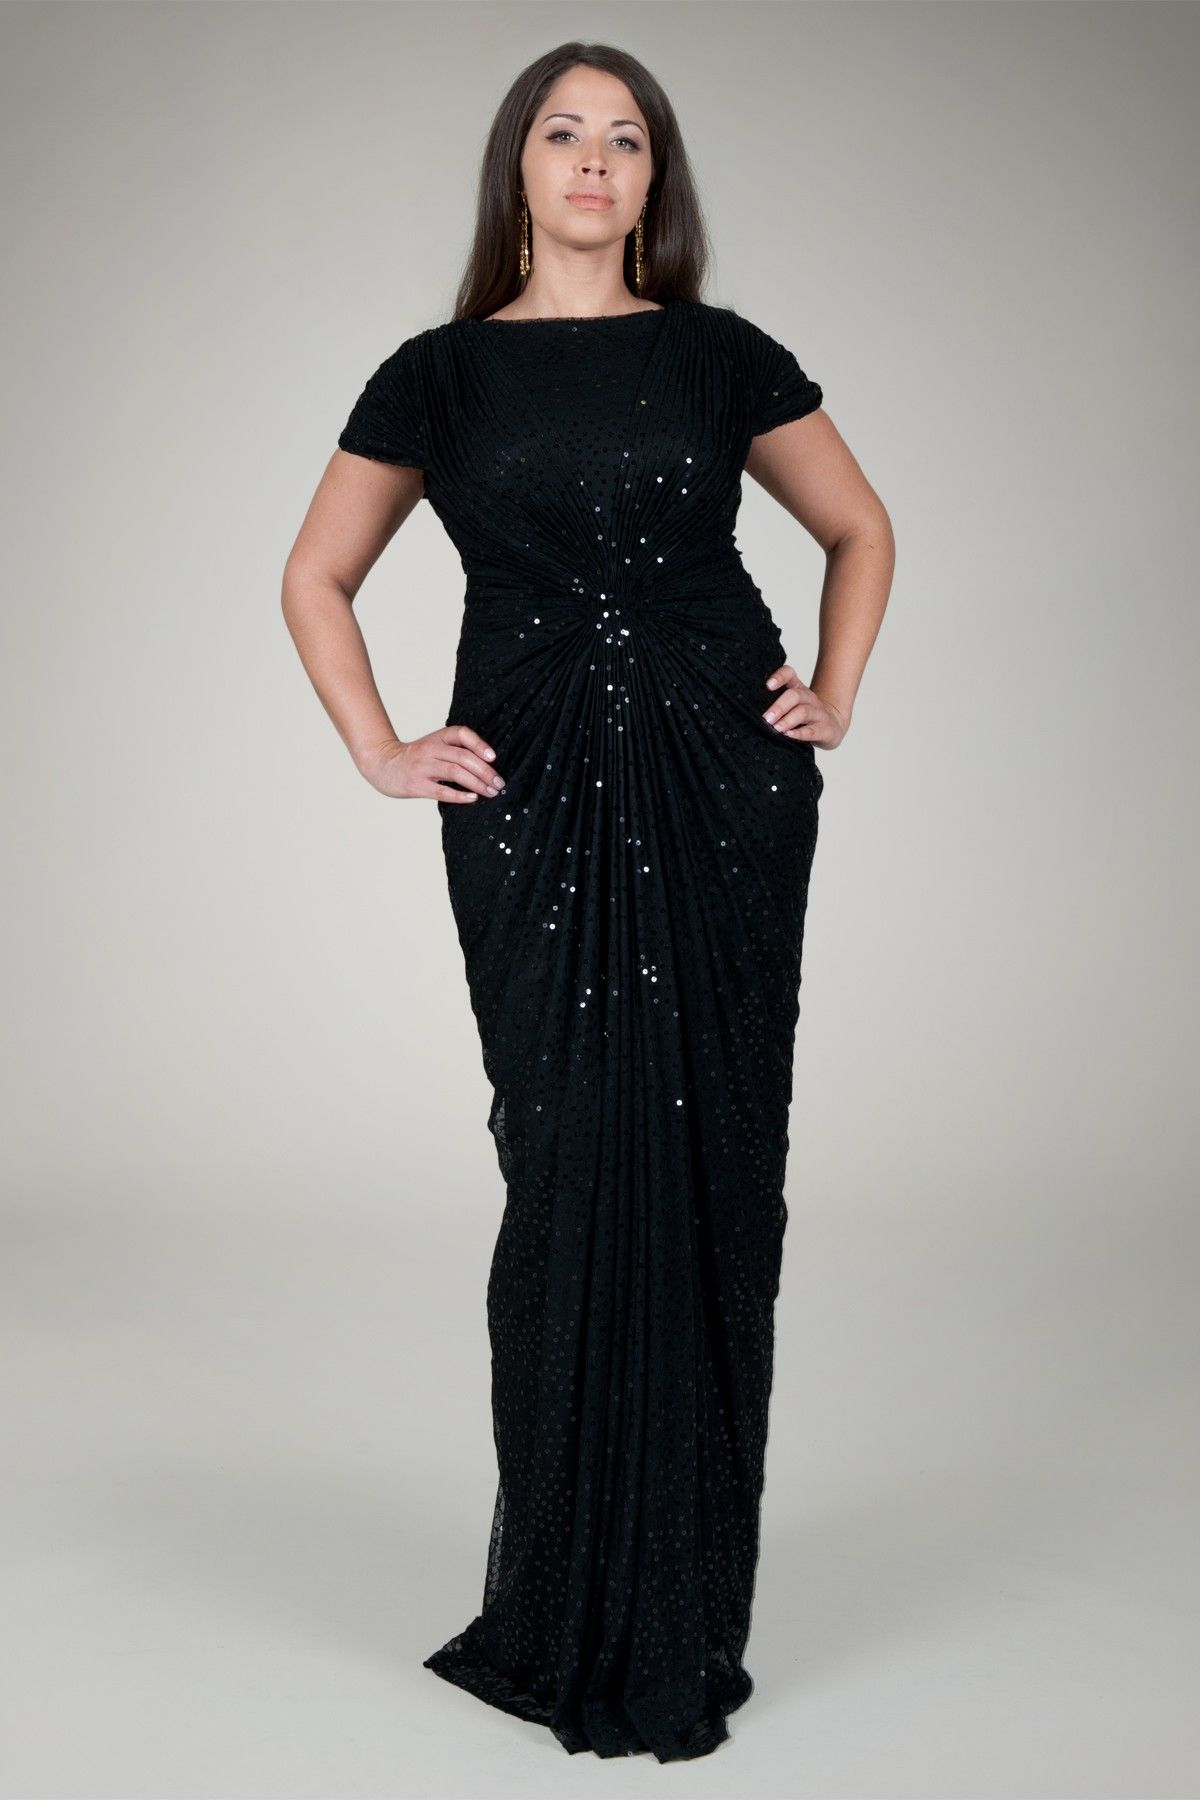 5c79f178b62b9 Red Carpet Sequin Gown in Black - Plus Size Evening Shop | Tadashi Shoji